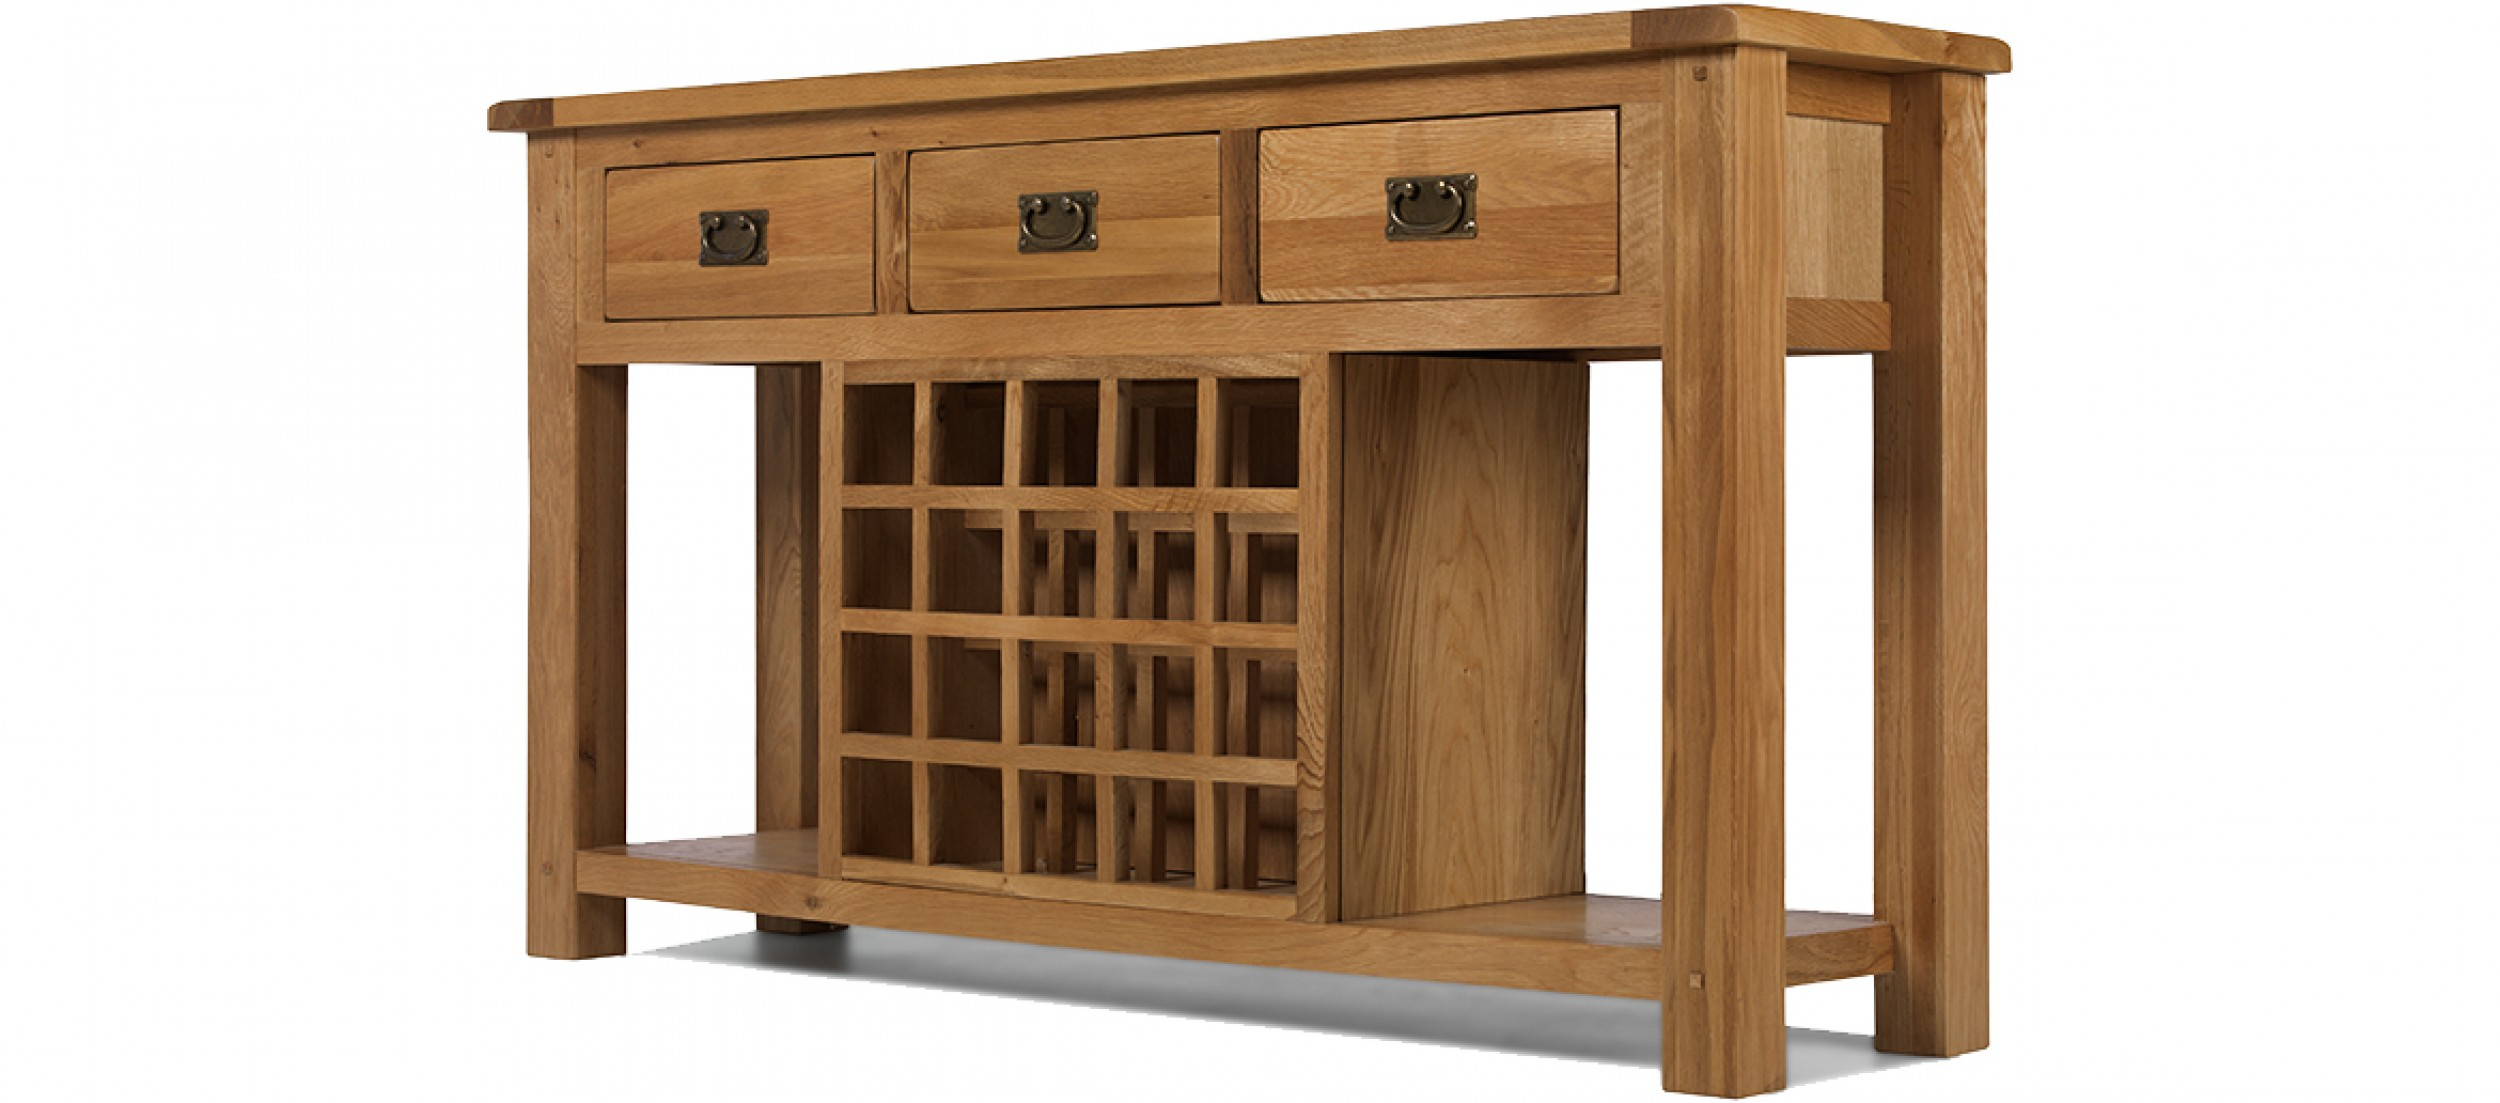 Rustic Oak Wine Rack Console Table | Quercus Living In Natural 2 Door Plasma Console Tables (Gallery 22 of 30)